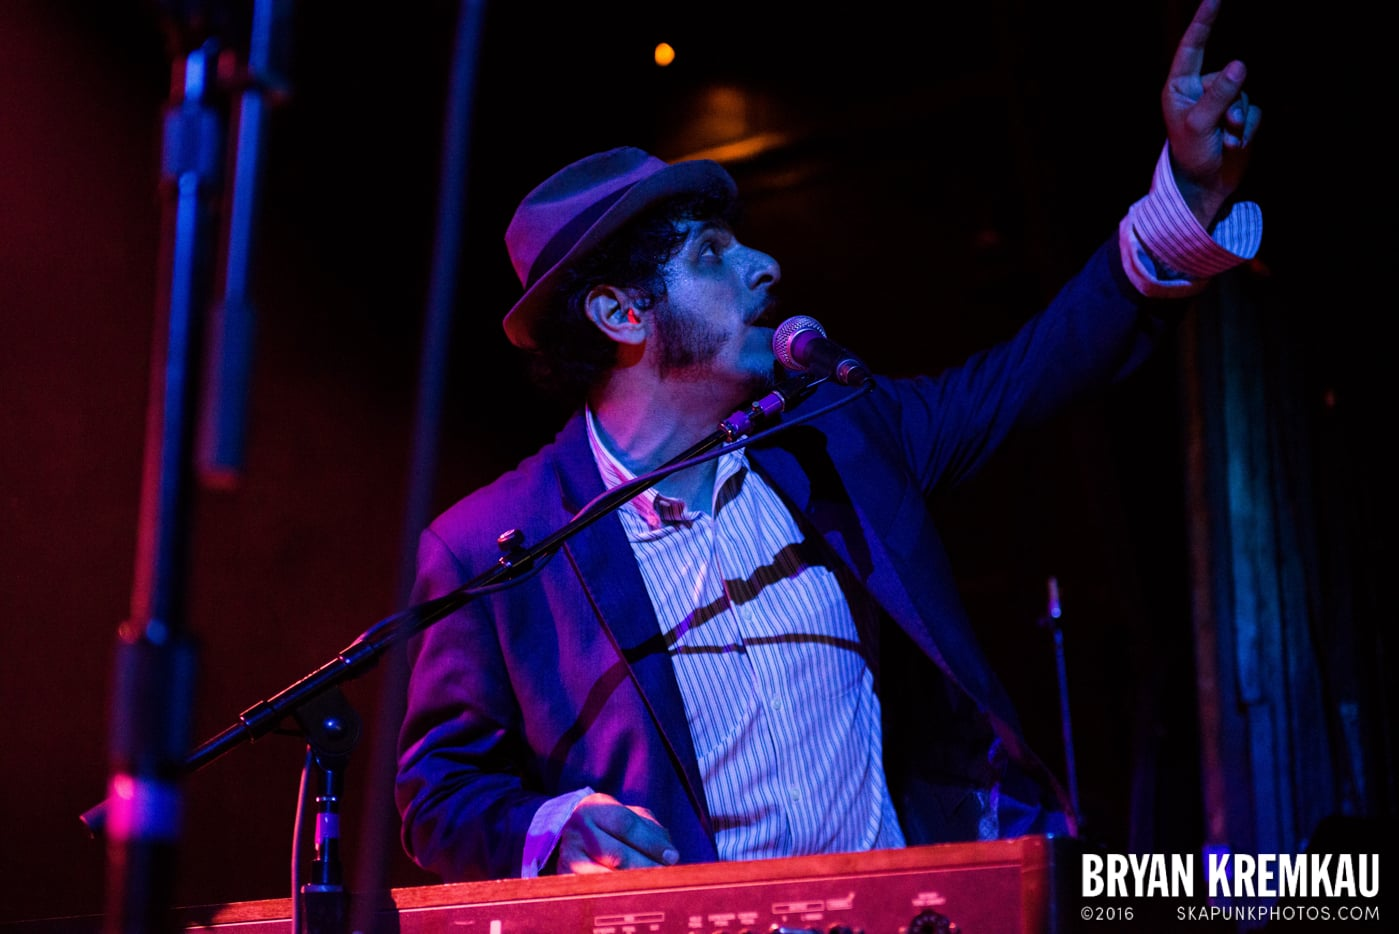 The Slackers @ Apple Stomp: Day 2, Irving Plaza, NYC - June 1st 2013 - Bryan Kremkau (10)